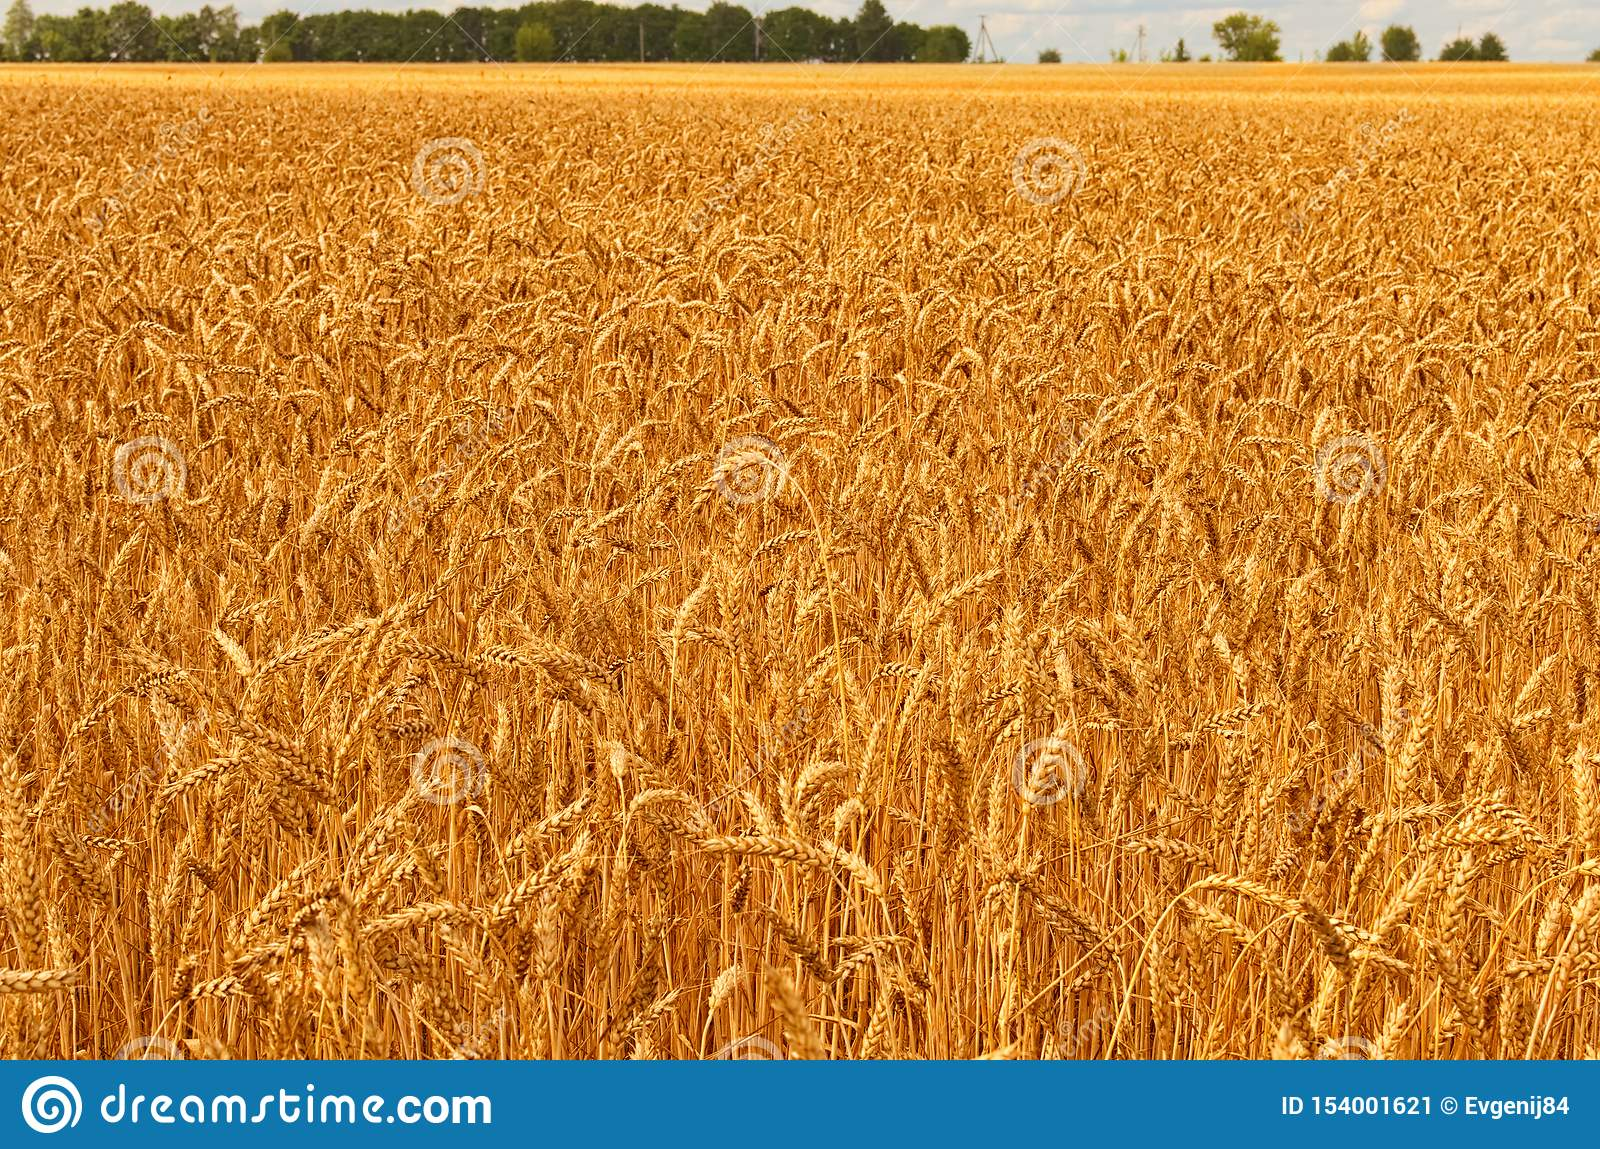 Beautiful landscape view of gold wheat field against blue sky. Agricultural concept